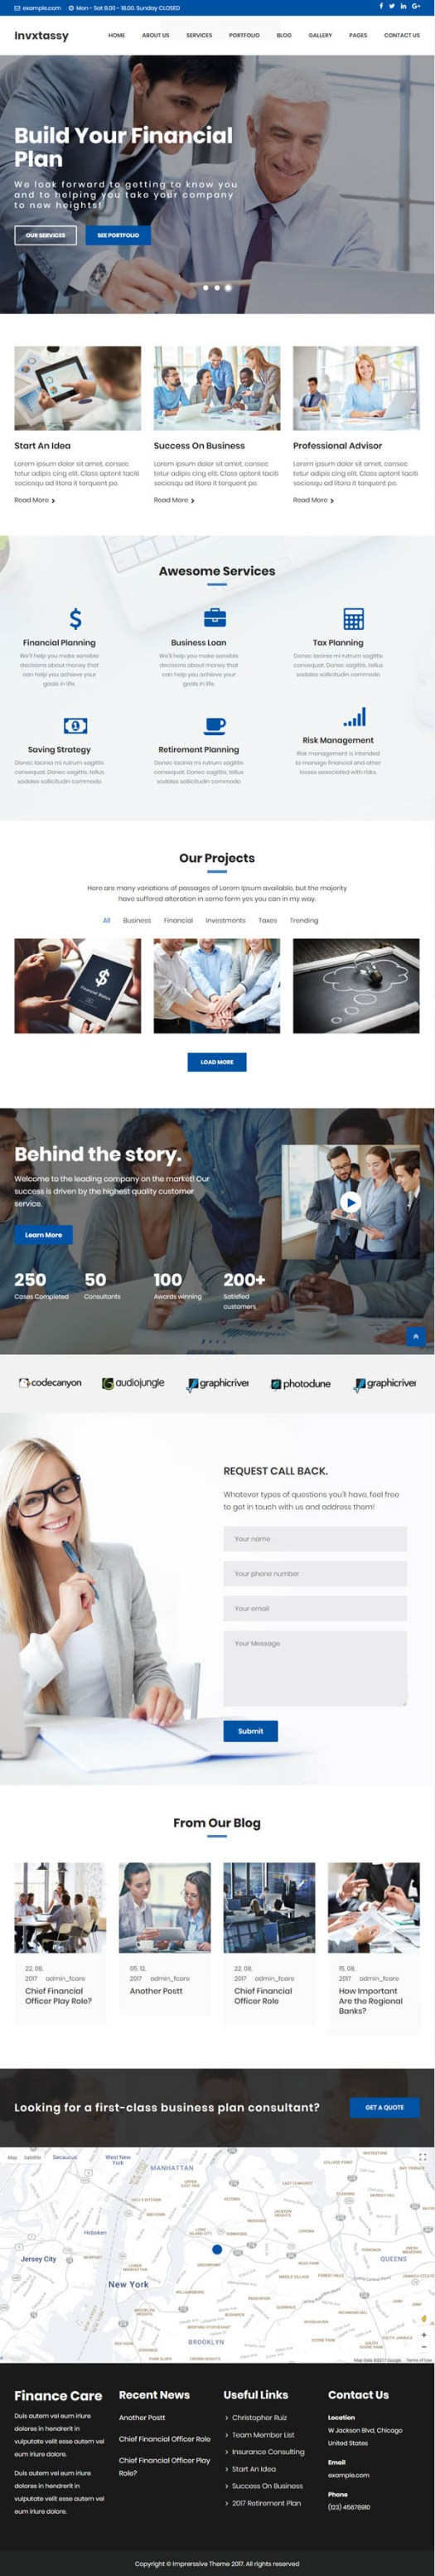 Invxtassy – Finance and Consulting WordPress Theme